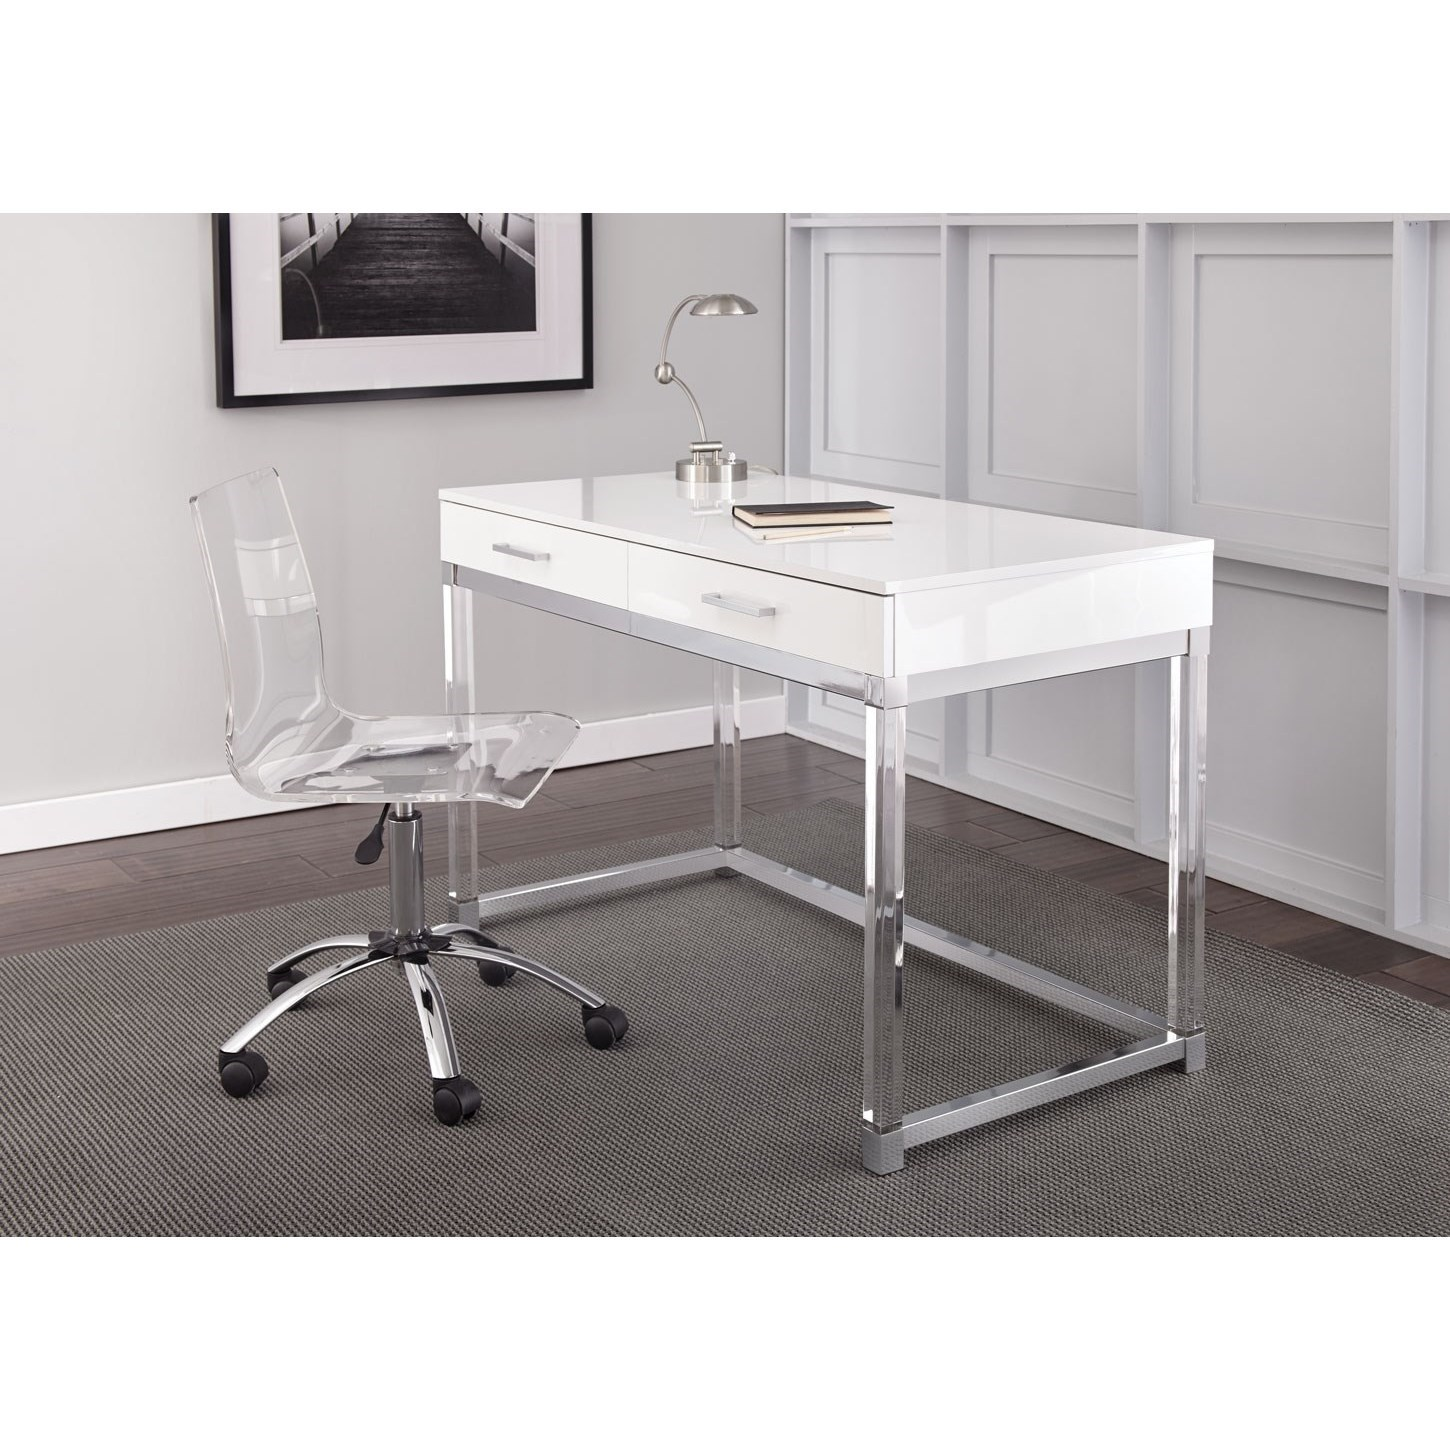 Desk And Chair Set Everett Chrome And Acrylic Writing Desk And Swivel Chair Set By Steve Silver At Wayside Furniture